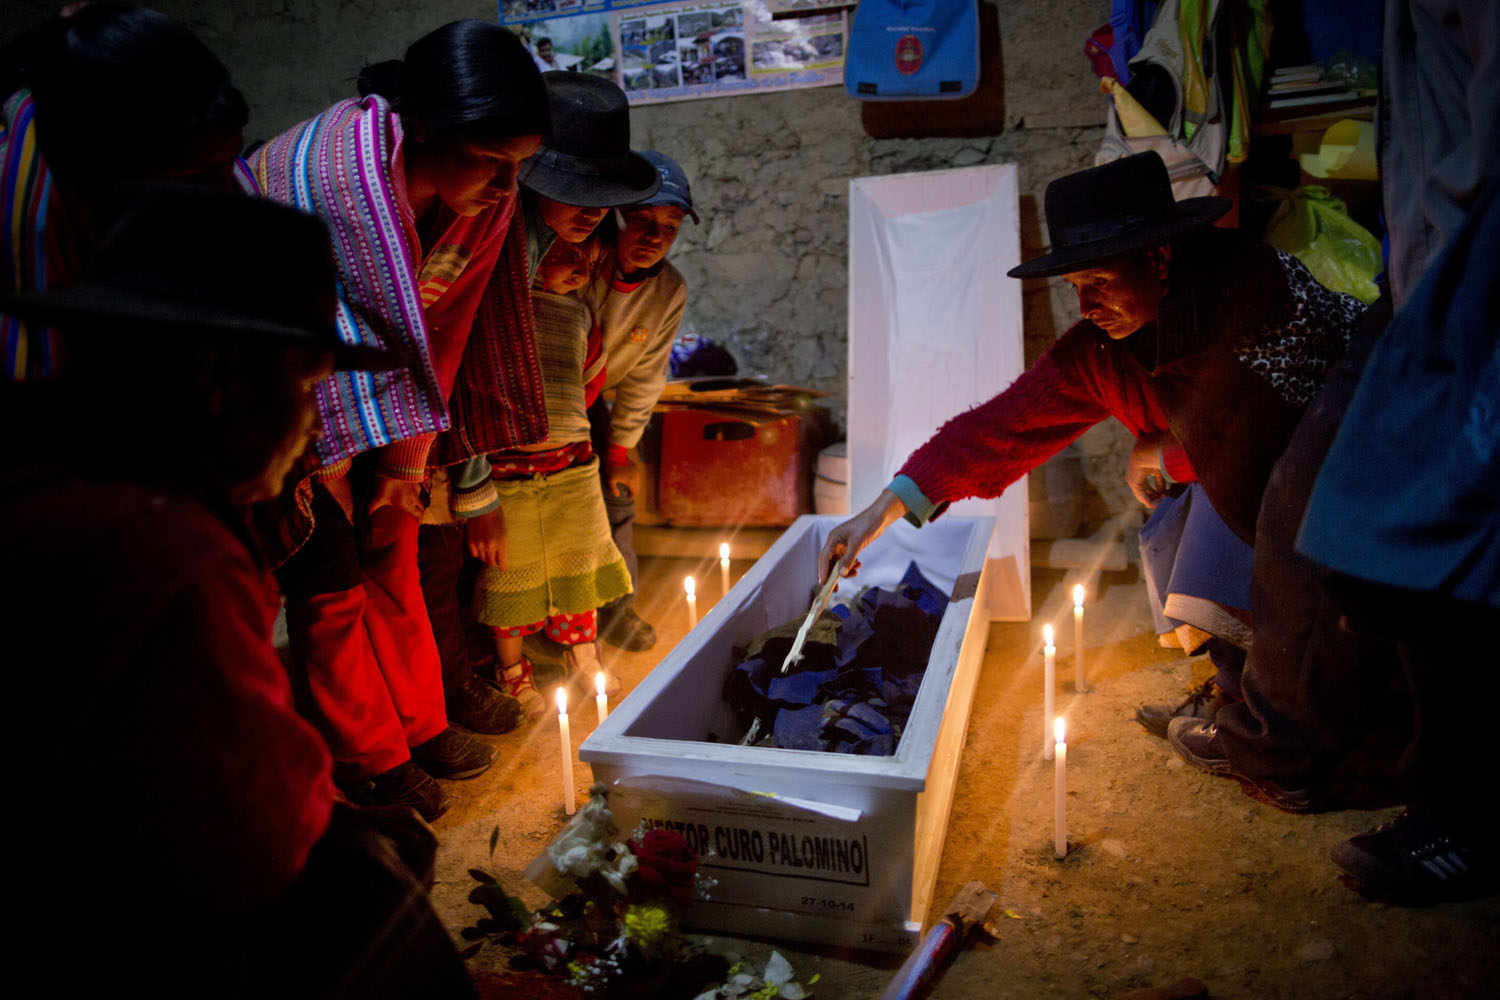 From the series: Peru's Dirty War VictimsTears run down Udilia Ciguria Curo's face as she slowly inspect the remains of her brother Hector Curo Palomino during a one day candle lit wake inside the their home, as is local custom, in Huallhua, in Peru's Ayahuanco region, Oct. 28, 2014. Curo was in his 20s when he was killed defending the town with two other members of the village's citizen self-defense force so villagers could escape from Shining Path militants on June 14, 1990. His remains were only recently exhumed and handed over to relatives, allowing them to bury him properly 24 years later.